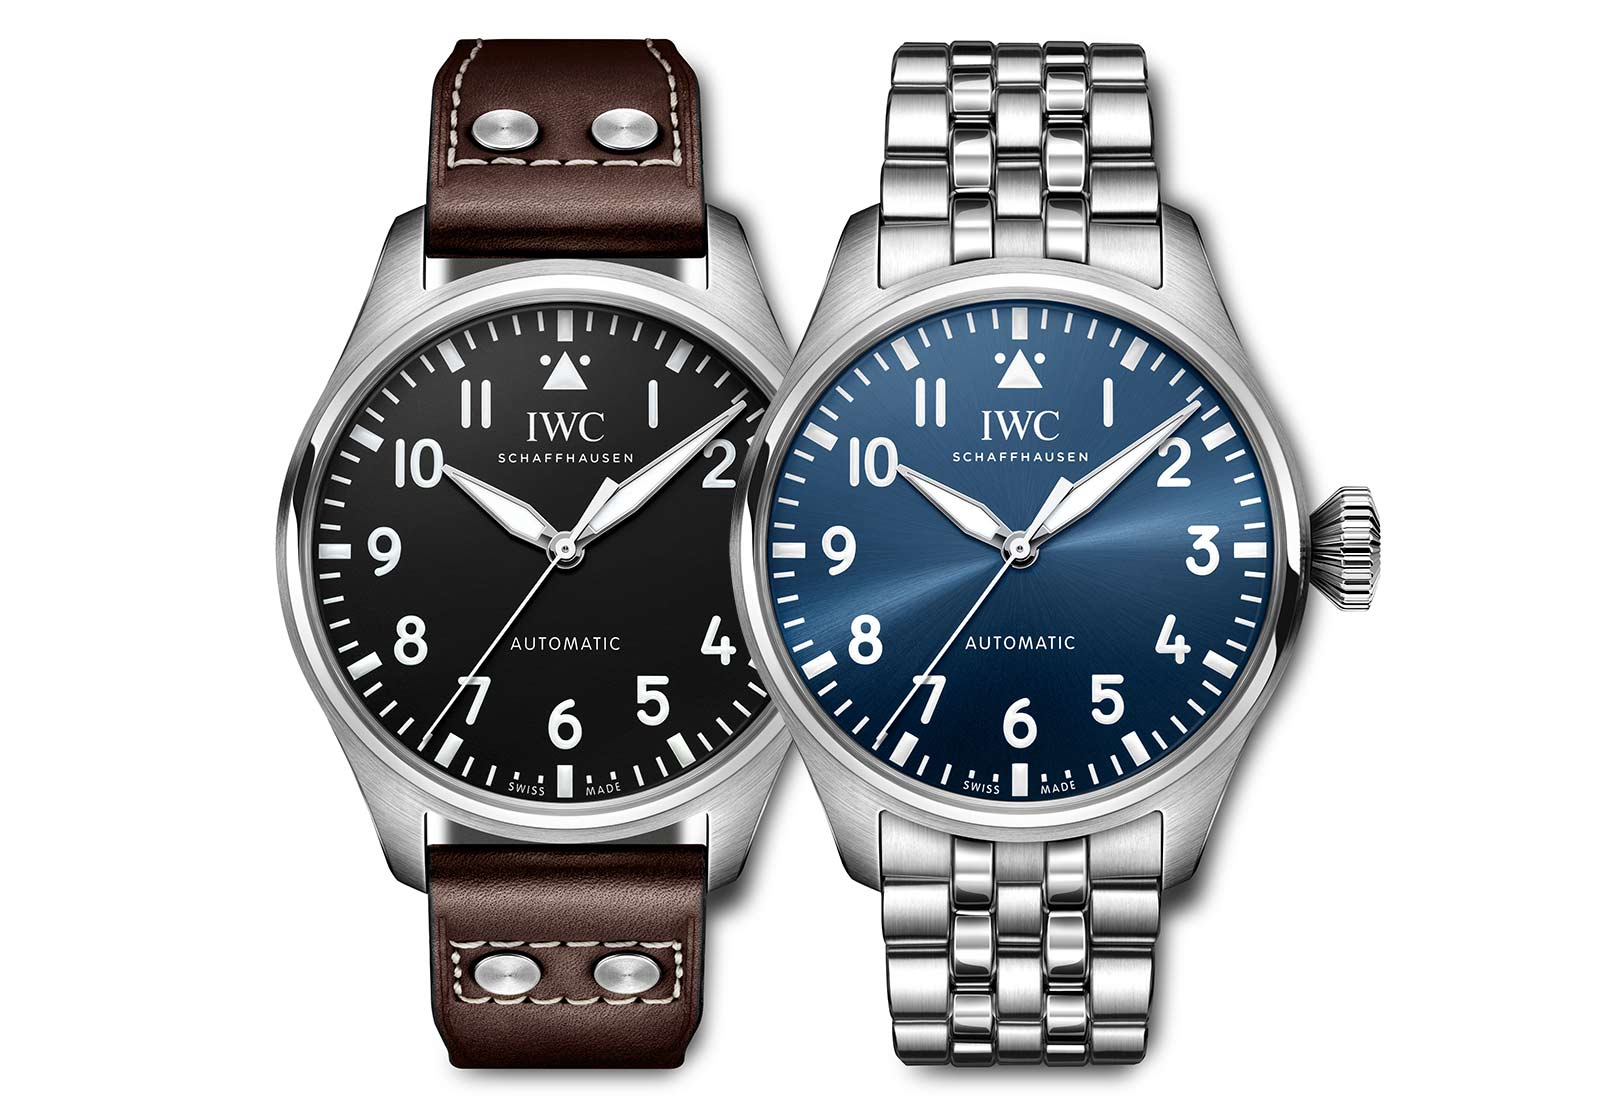 IWC ביג פיילוט 43. מקור - TimeandWatches.